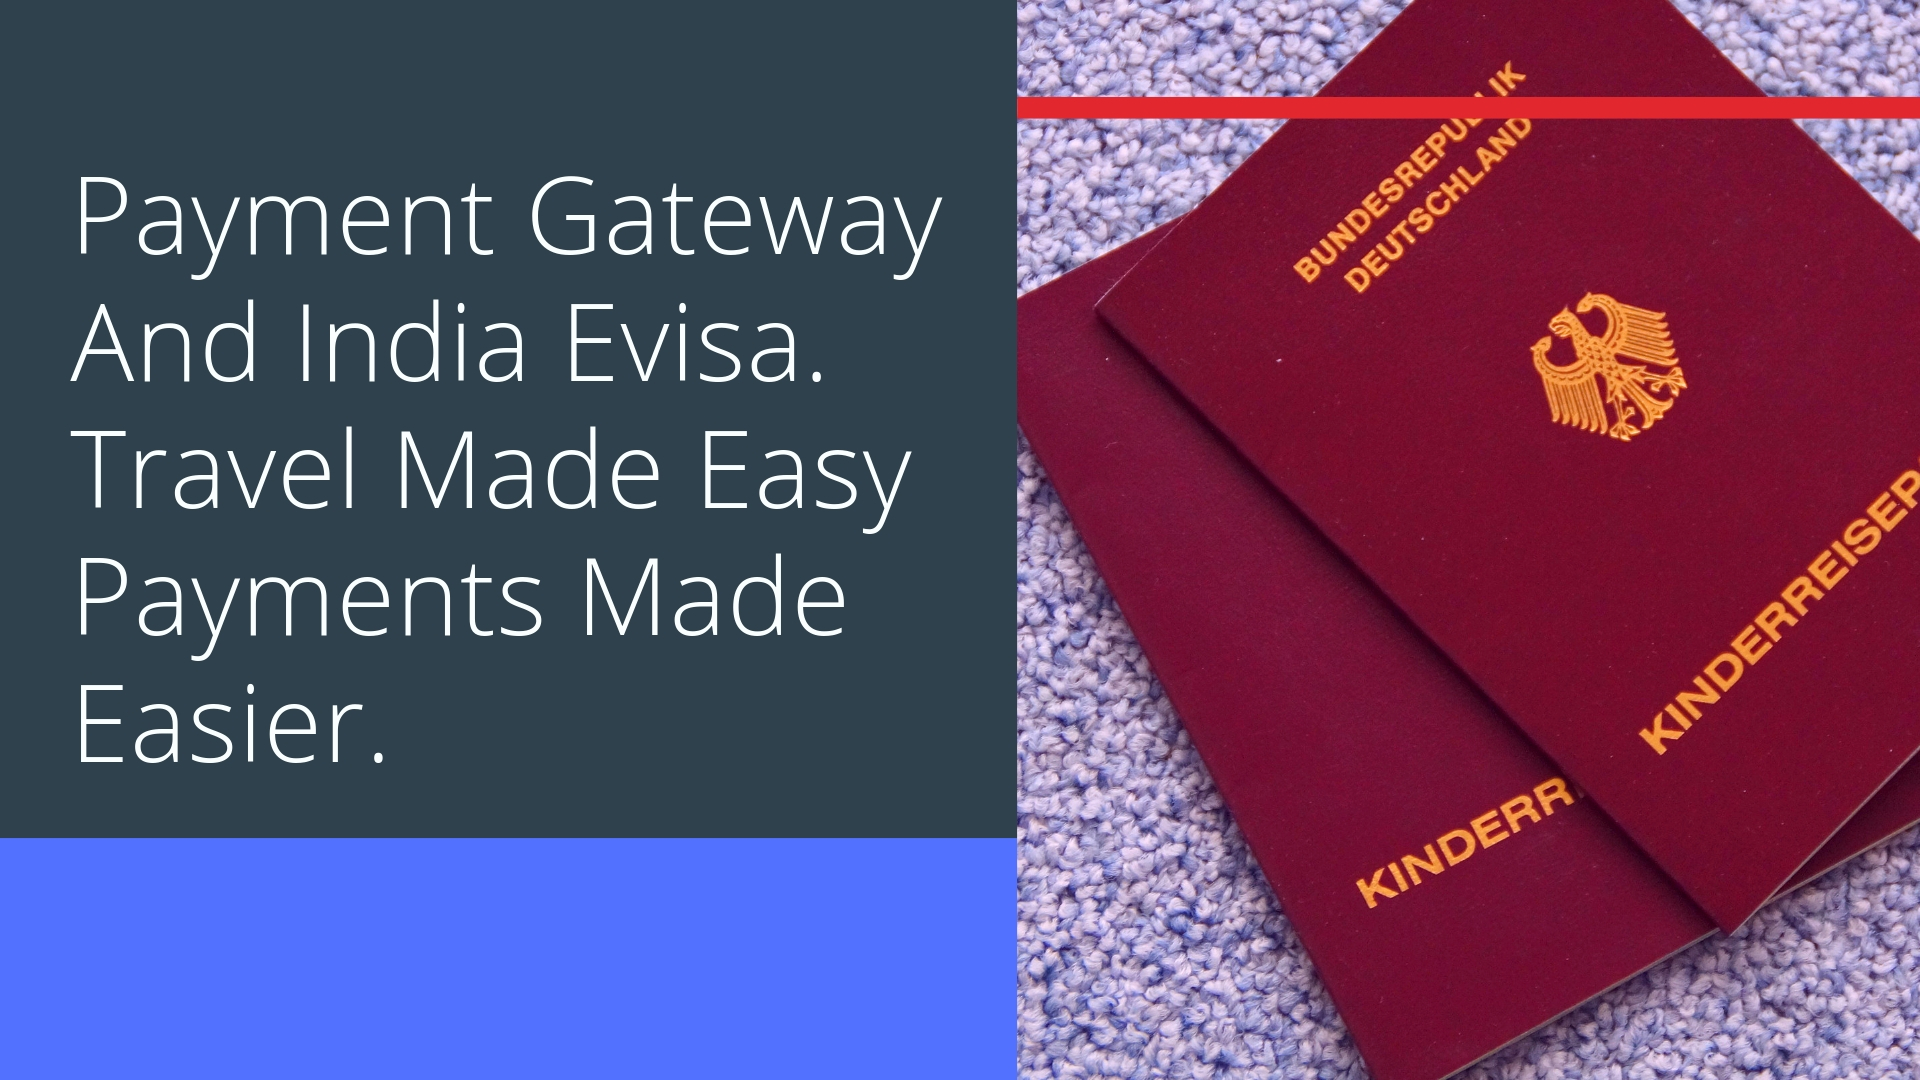 Payment Gateway And India Evisa. Travel Made Easy Payments Made Easier.